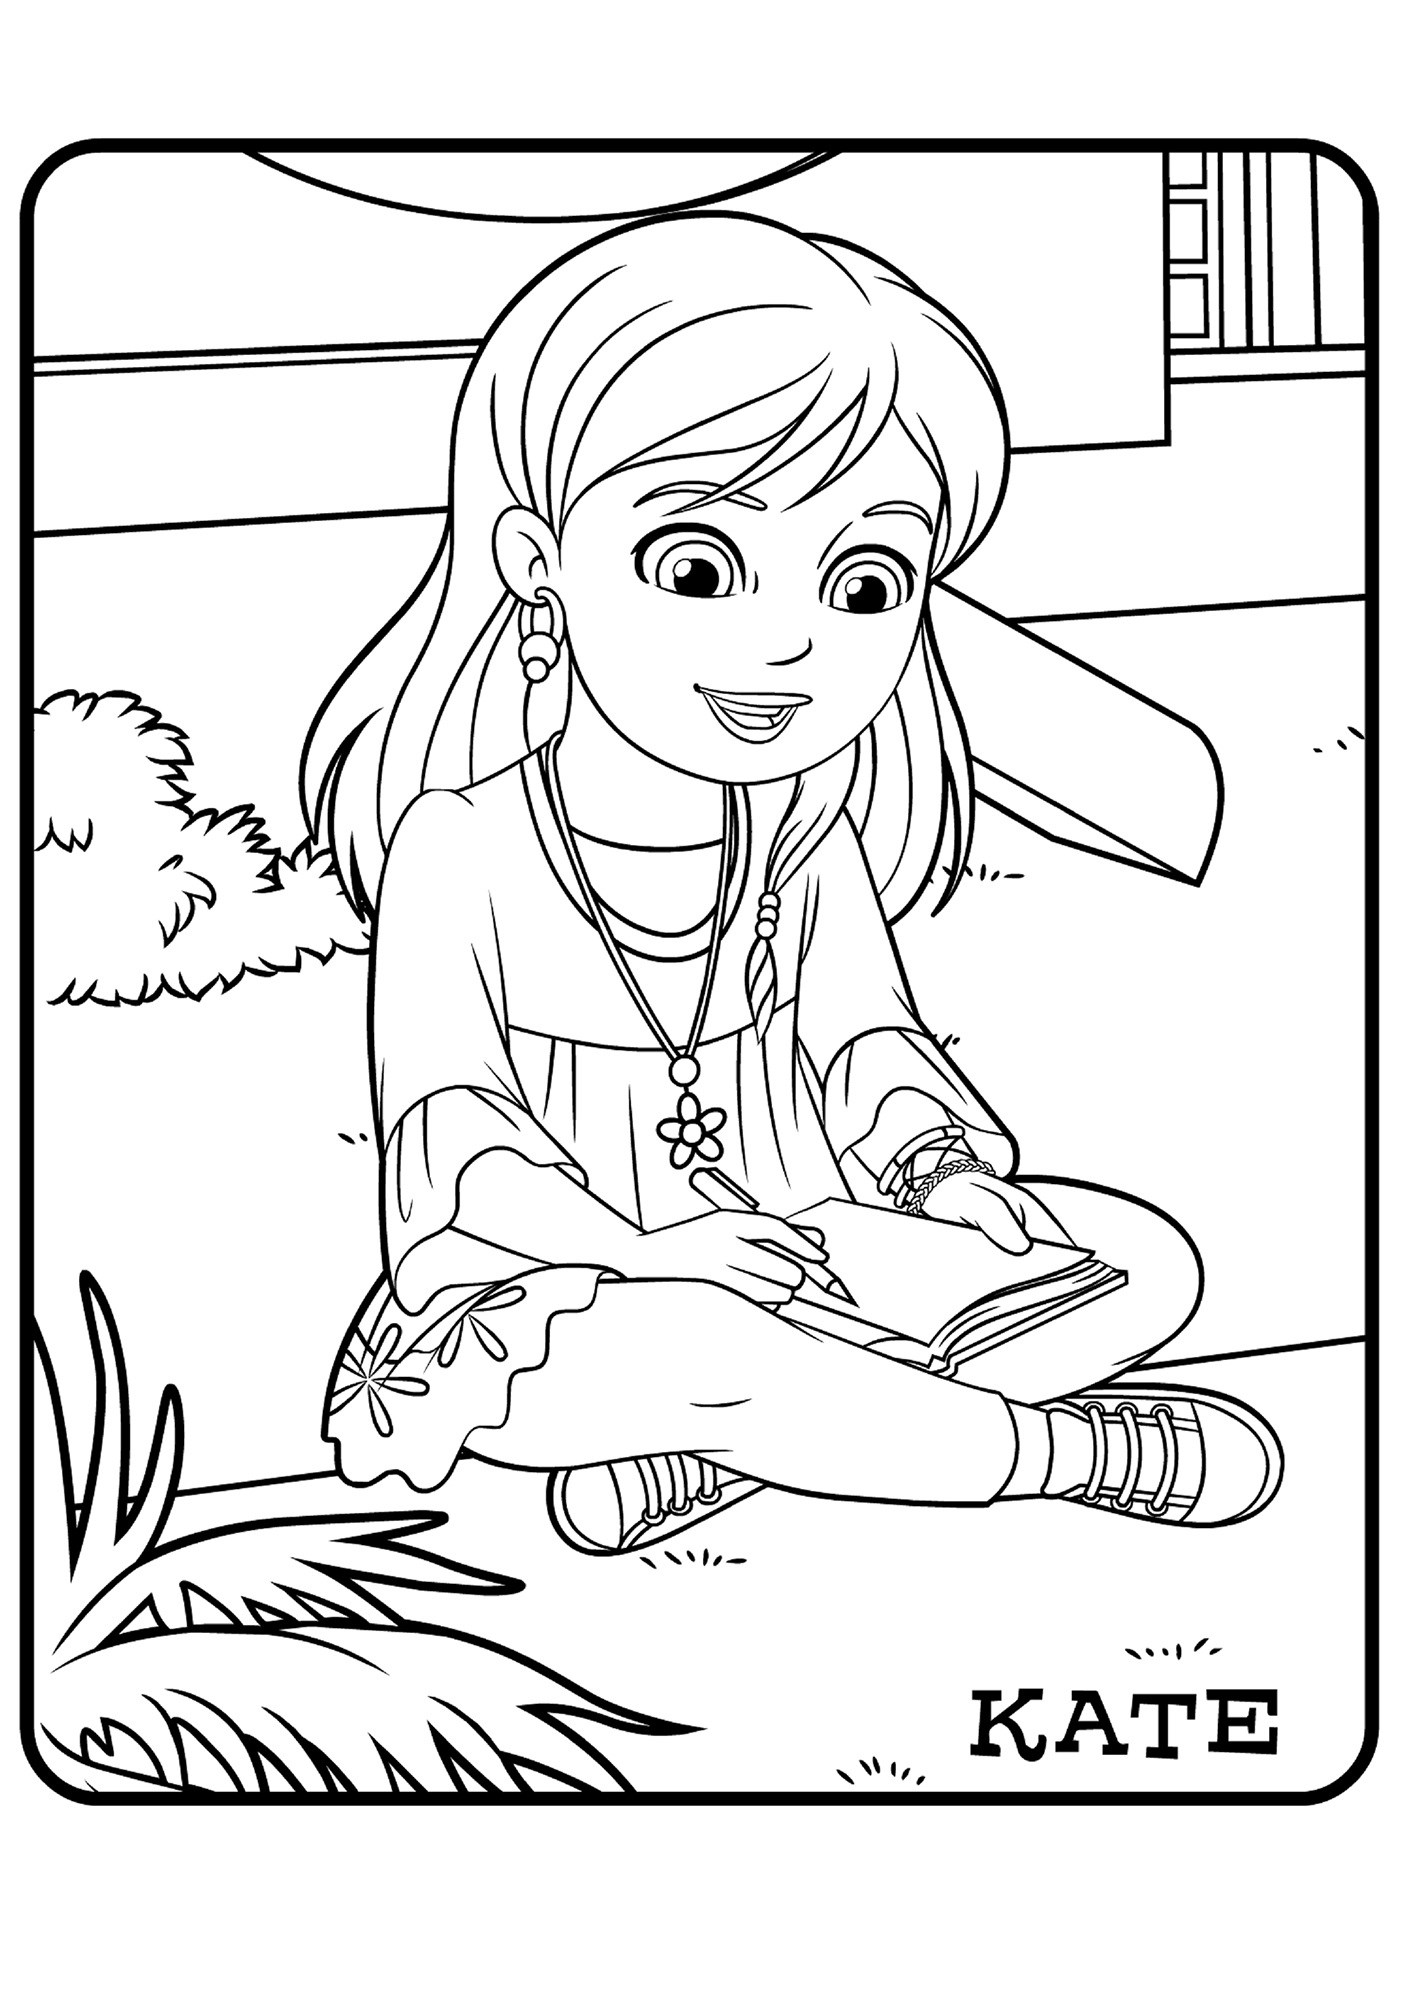 coloring pages dora and friends coloring pages dora and friends bestappsforkidscom friends dora and coloring pages